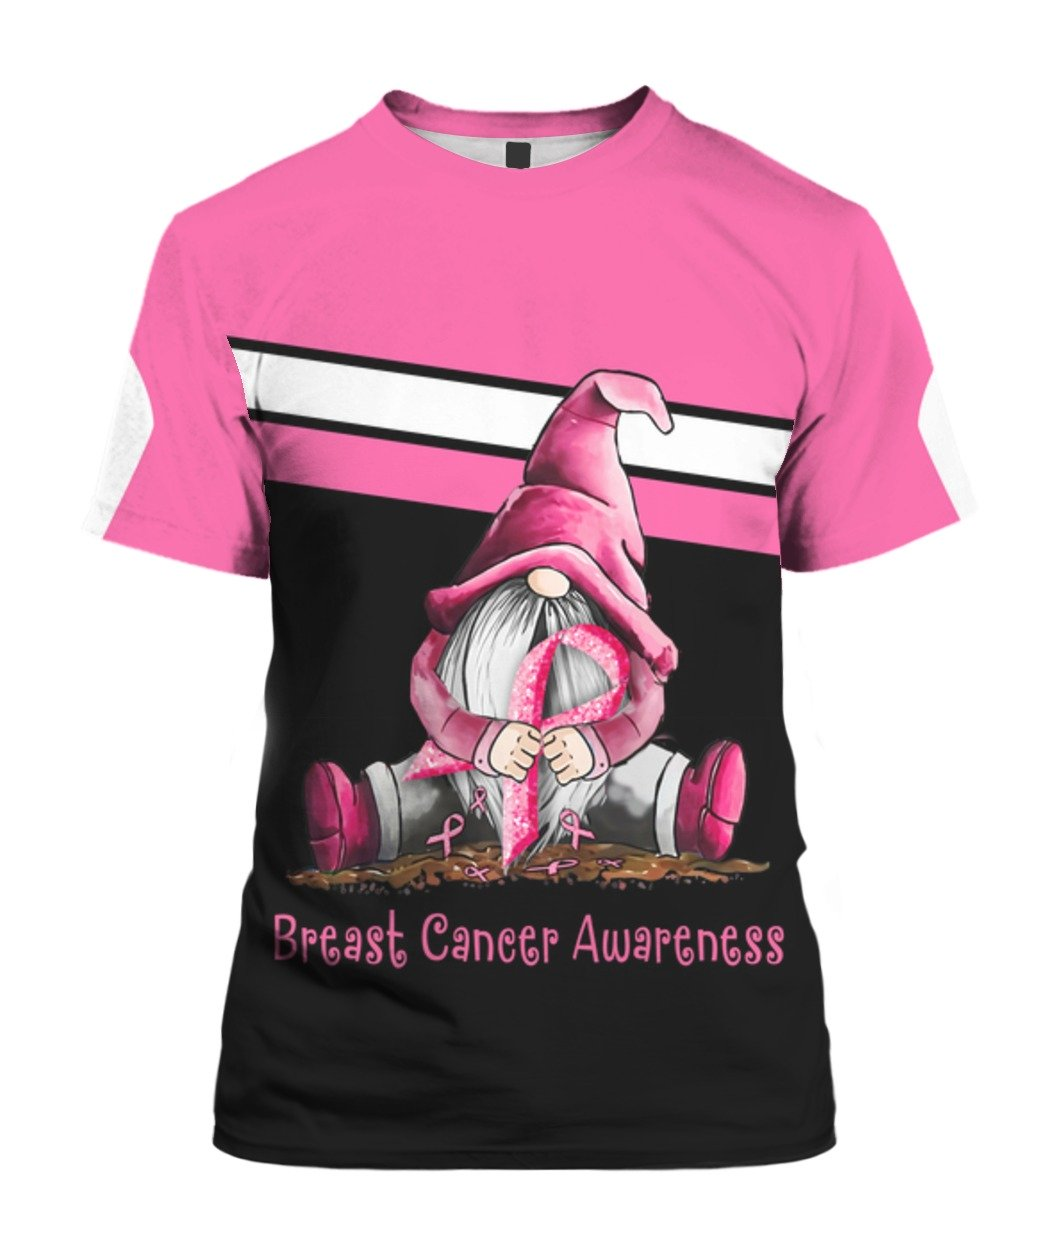 Gnome breast cancer awareness full printing tshirt